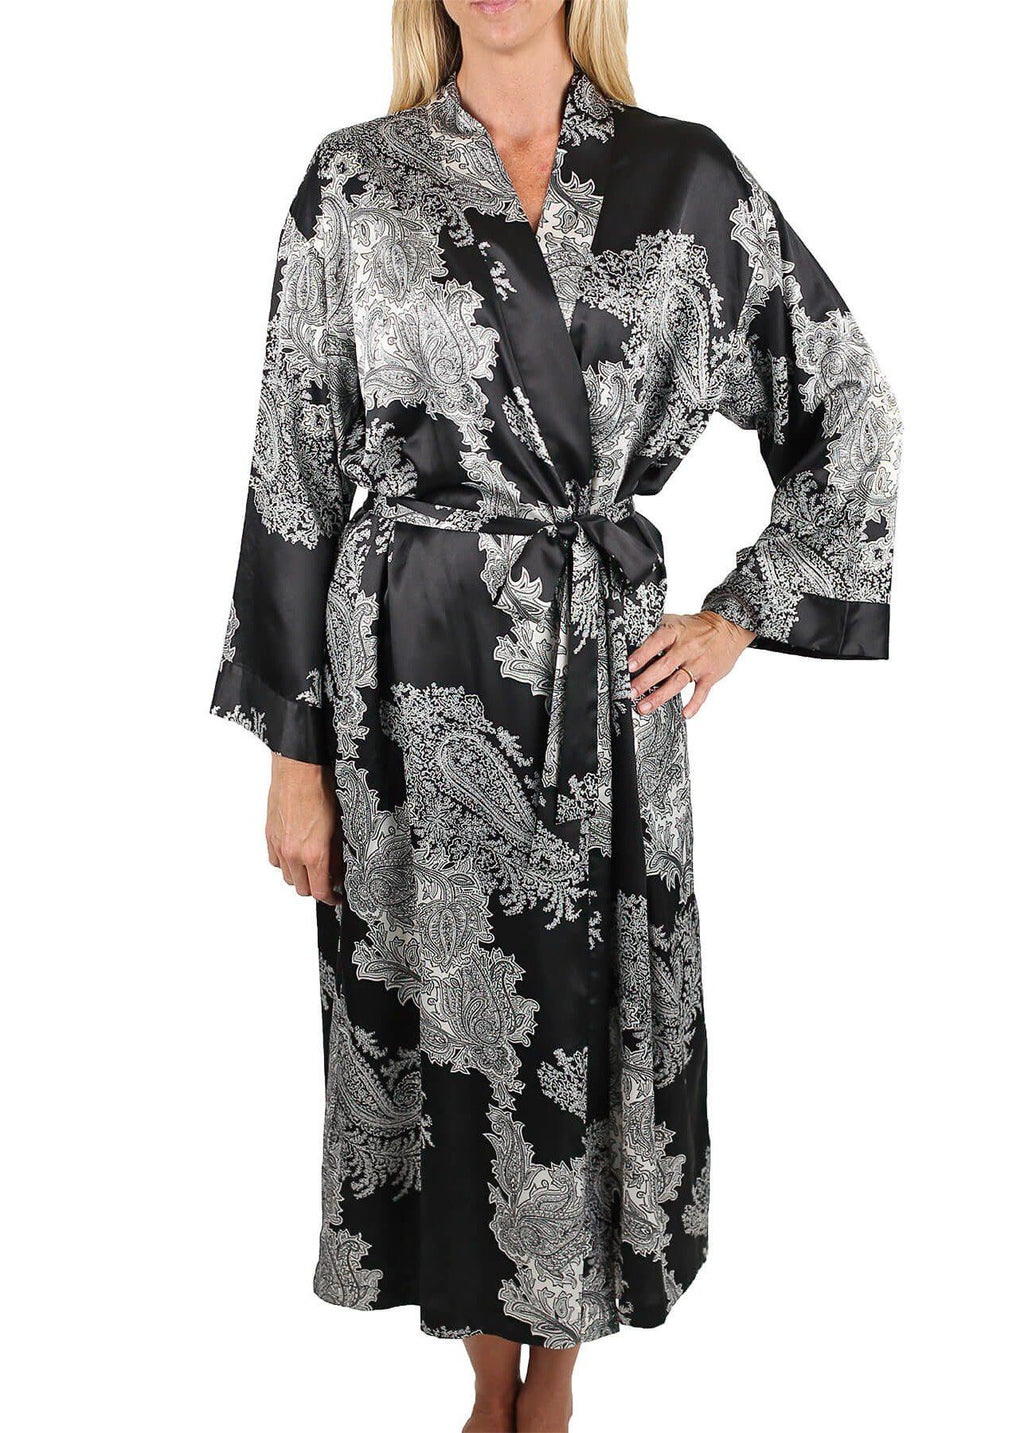 Raeanna Long Printed Robe Mystique Intimates